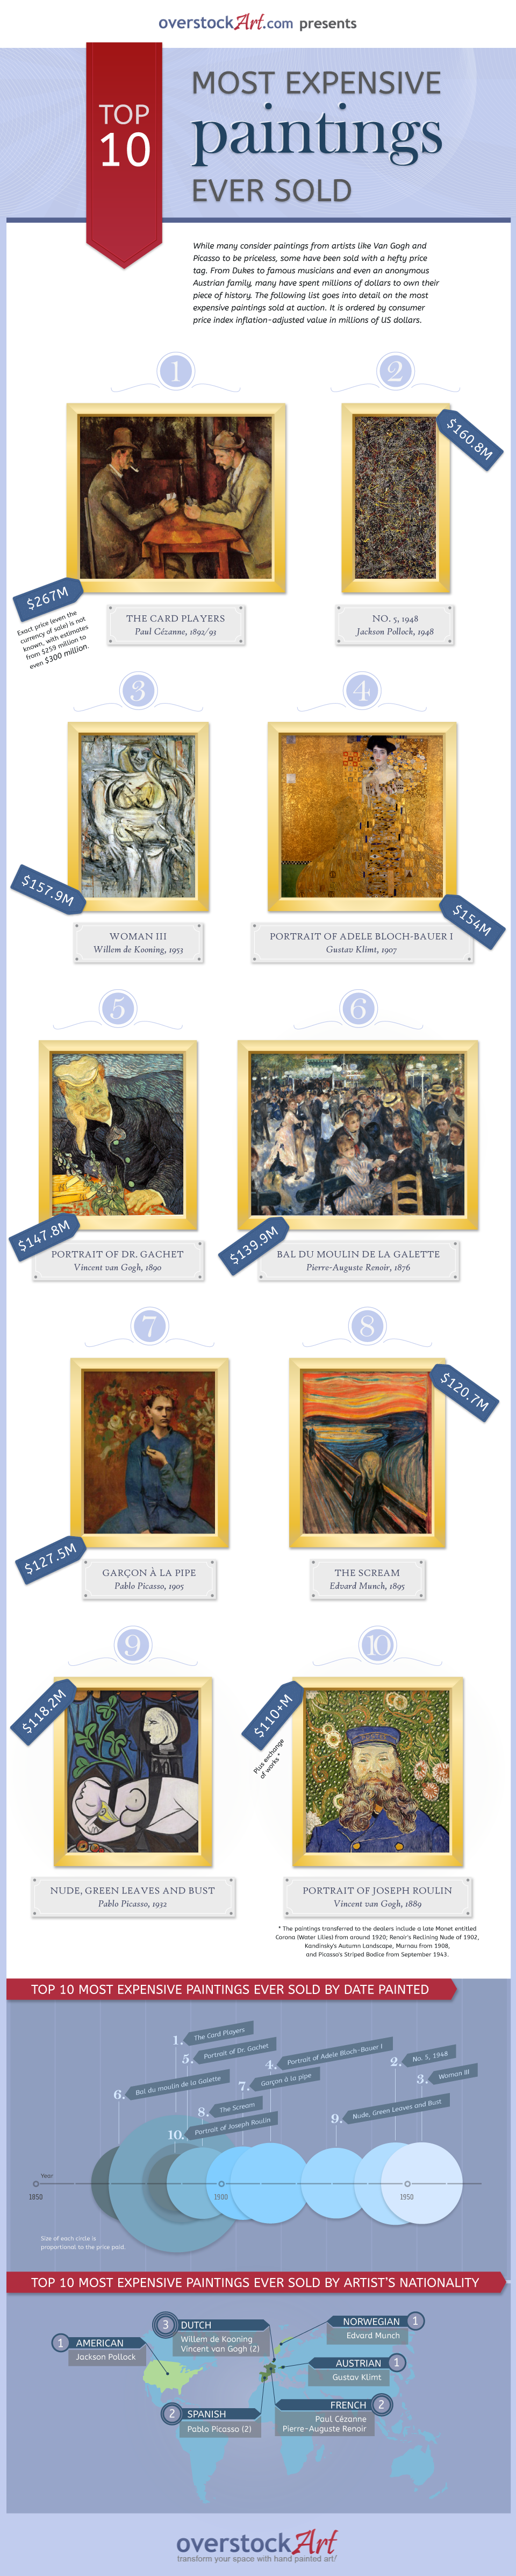 top-10-most-expensive-paintings-ever-sold